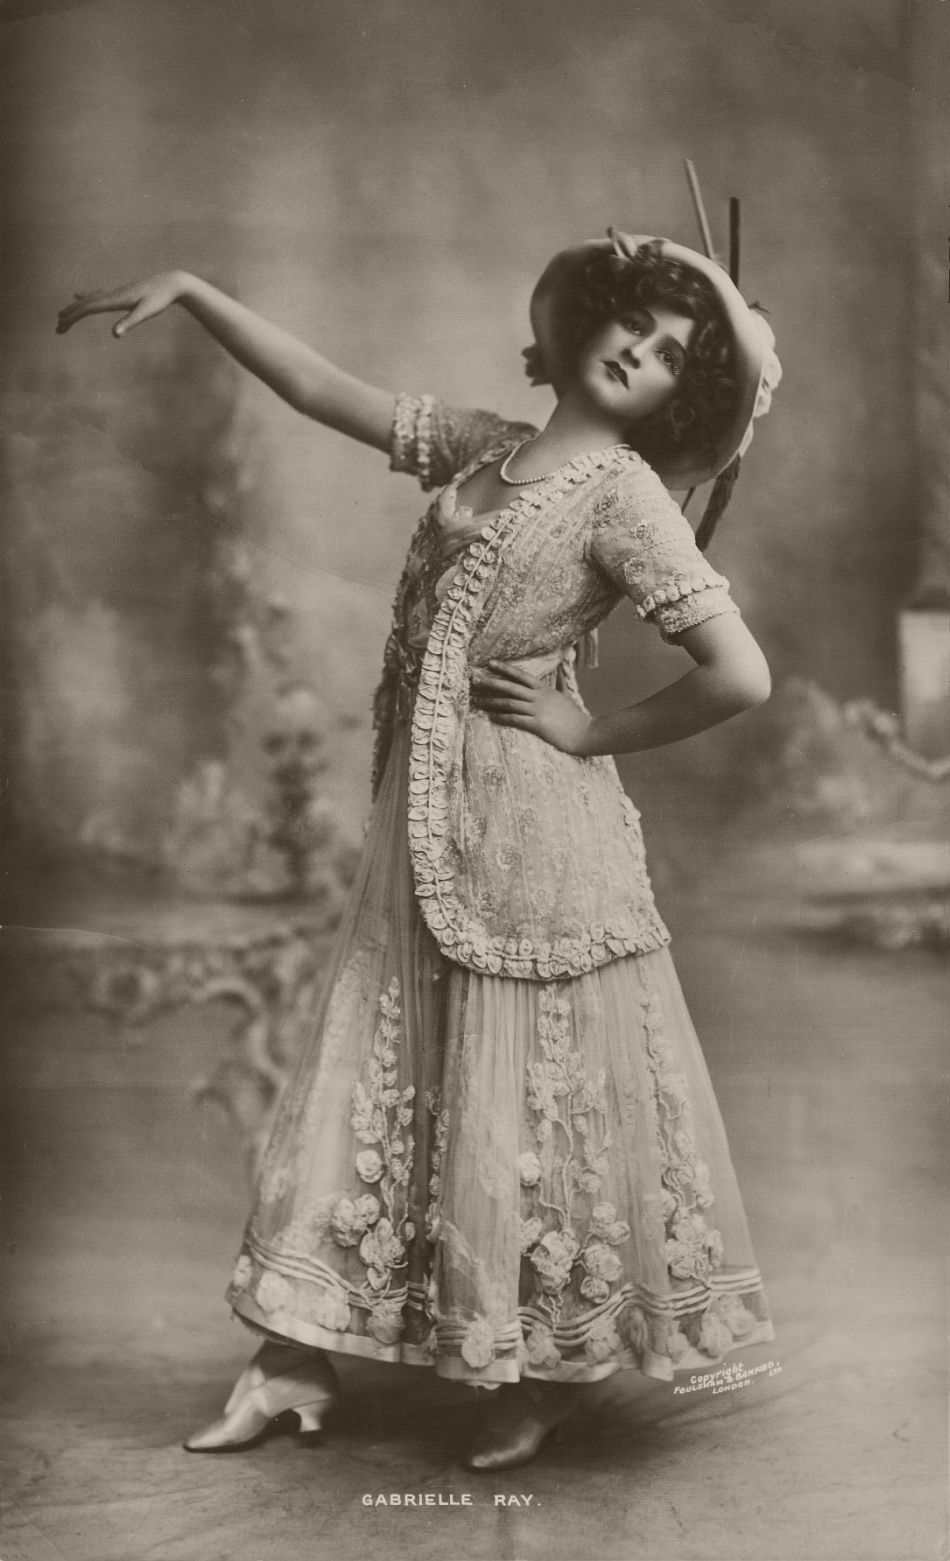 Gabrielle Ray (1883 - 1973), was an English stage actress, dancer and singer, best known for her roles in Edwardian musical comedies.  Ray was considered one of the most beautiful actresses on the London stage and became one of the most photographed women in the world. In the first decade of the 20th century, she had a good career in musical theatre. After an unsuccessful marriage, however, she never recovered the fame that she had enjoyed. She spent many of her later years in mental hospitals.